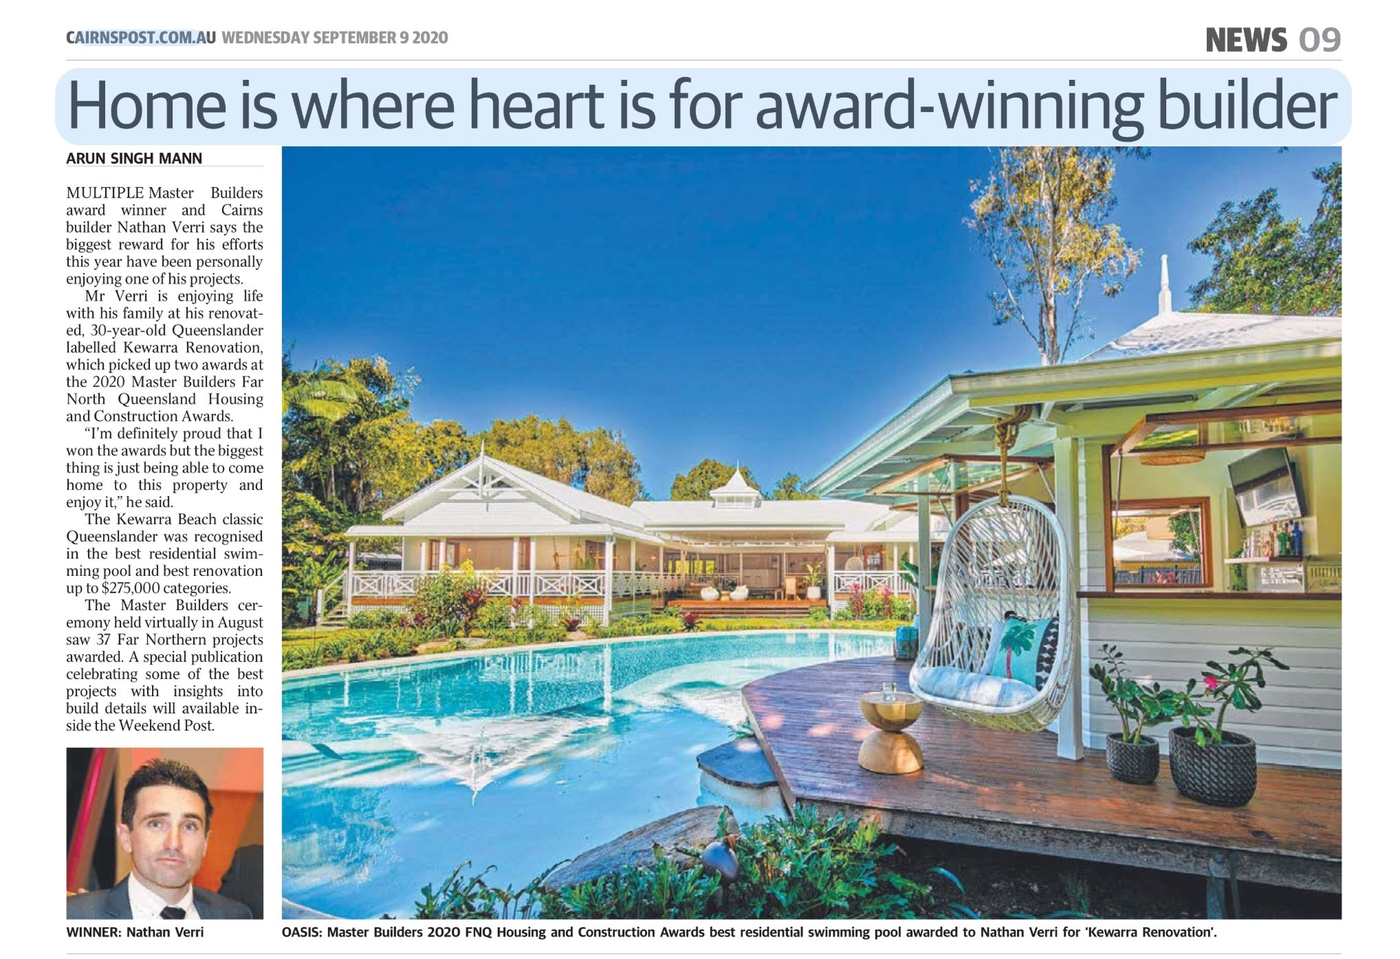 News article with image - Renovated pool cabana overlooking pool to white house in the background